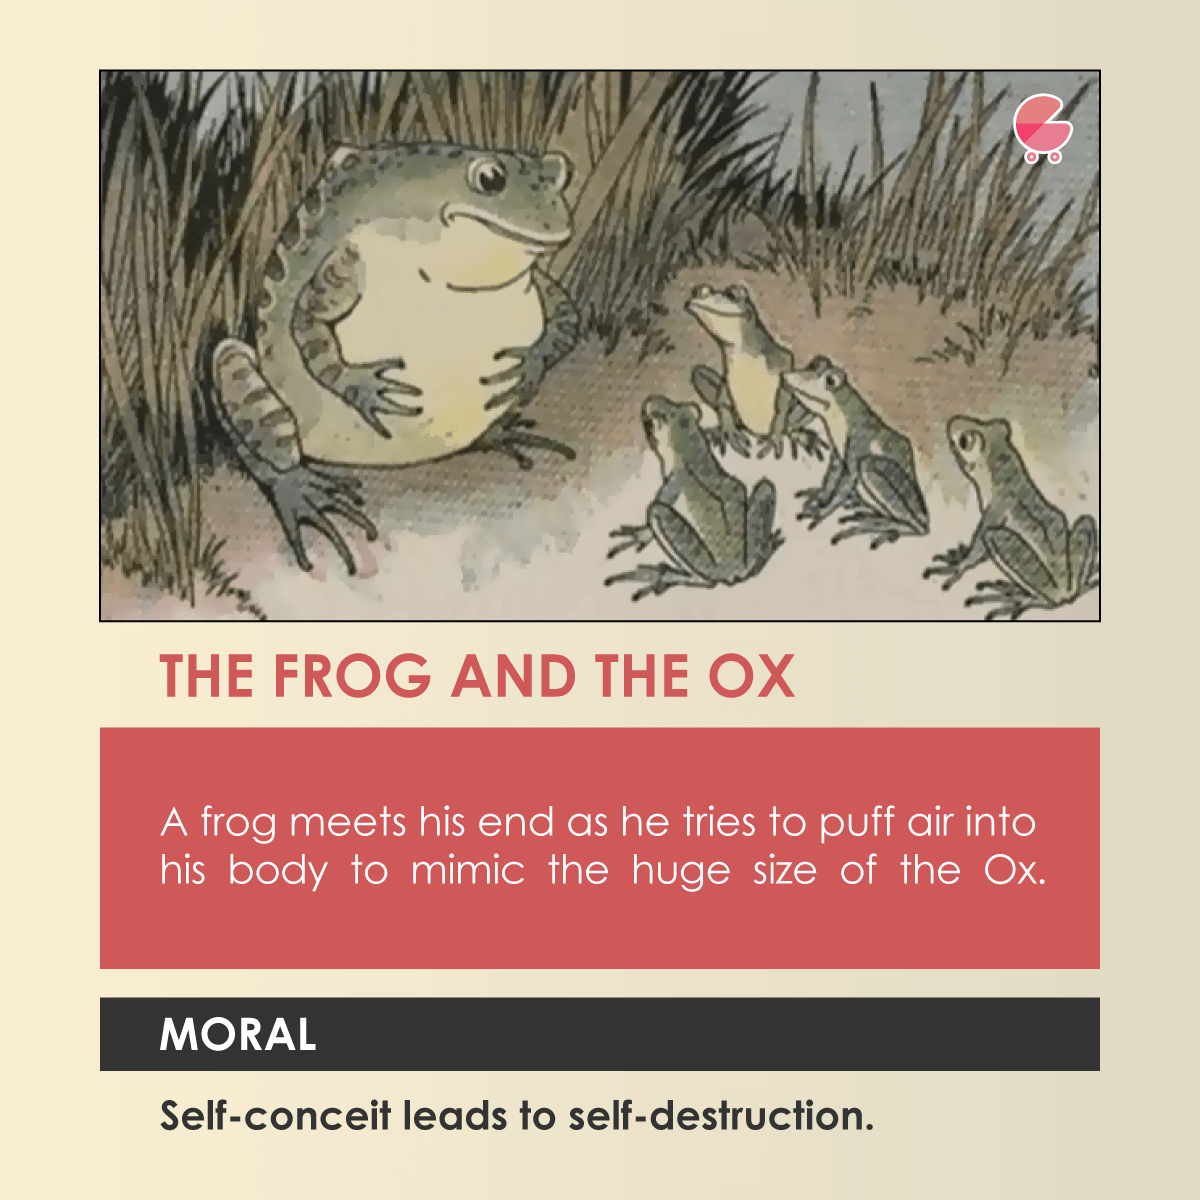 the frog and the ox